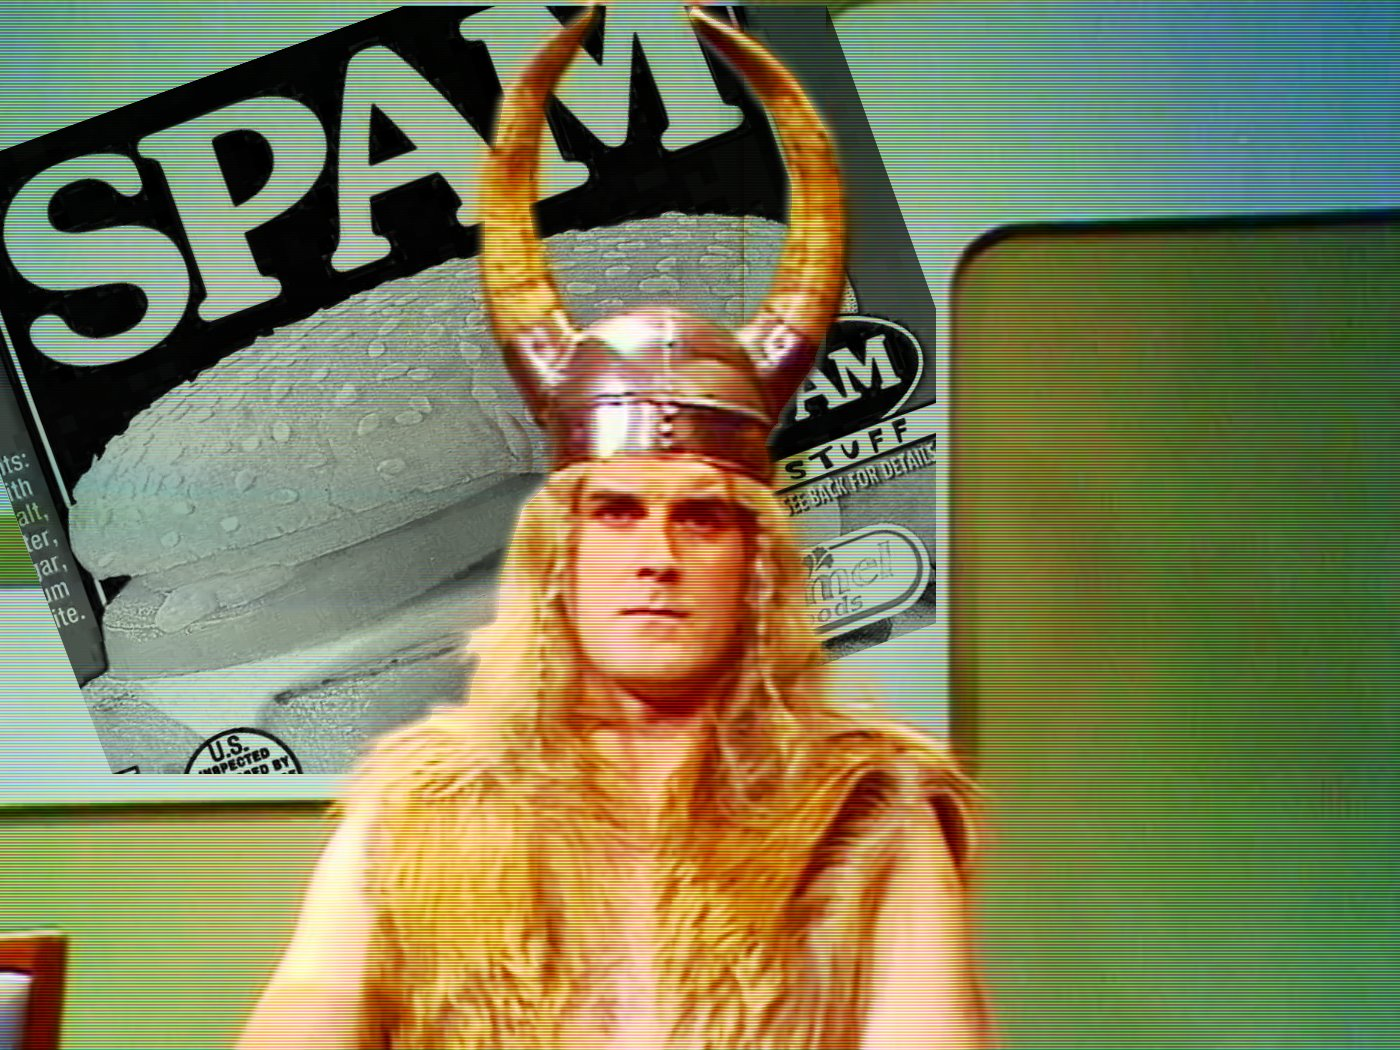 John Cleese, dressed as a viking, in front of a picture of Spam; from the sketch show Monty Python's Flying Circus